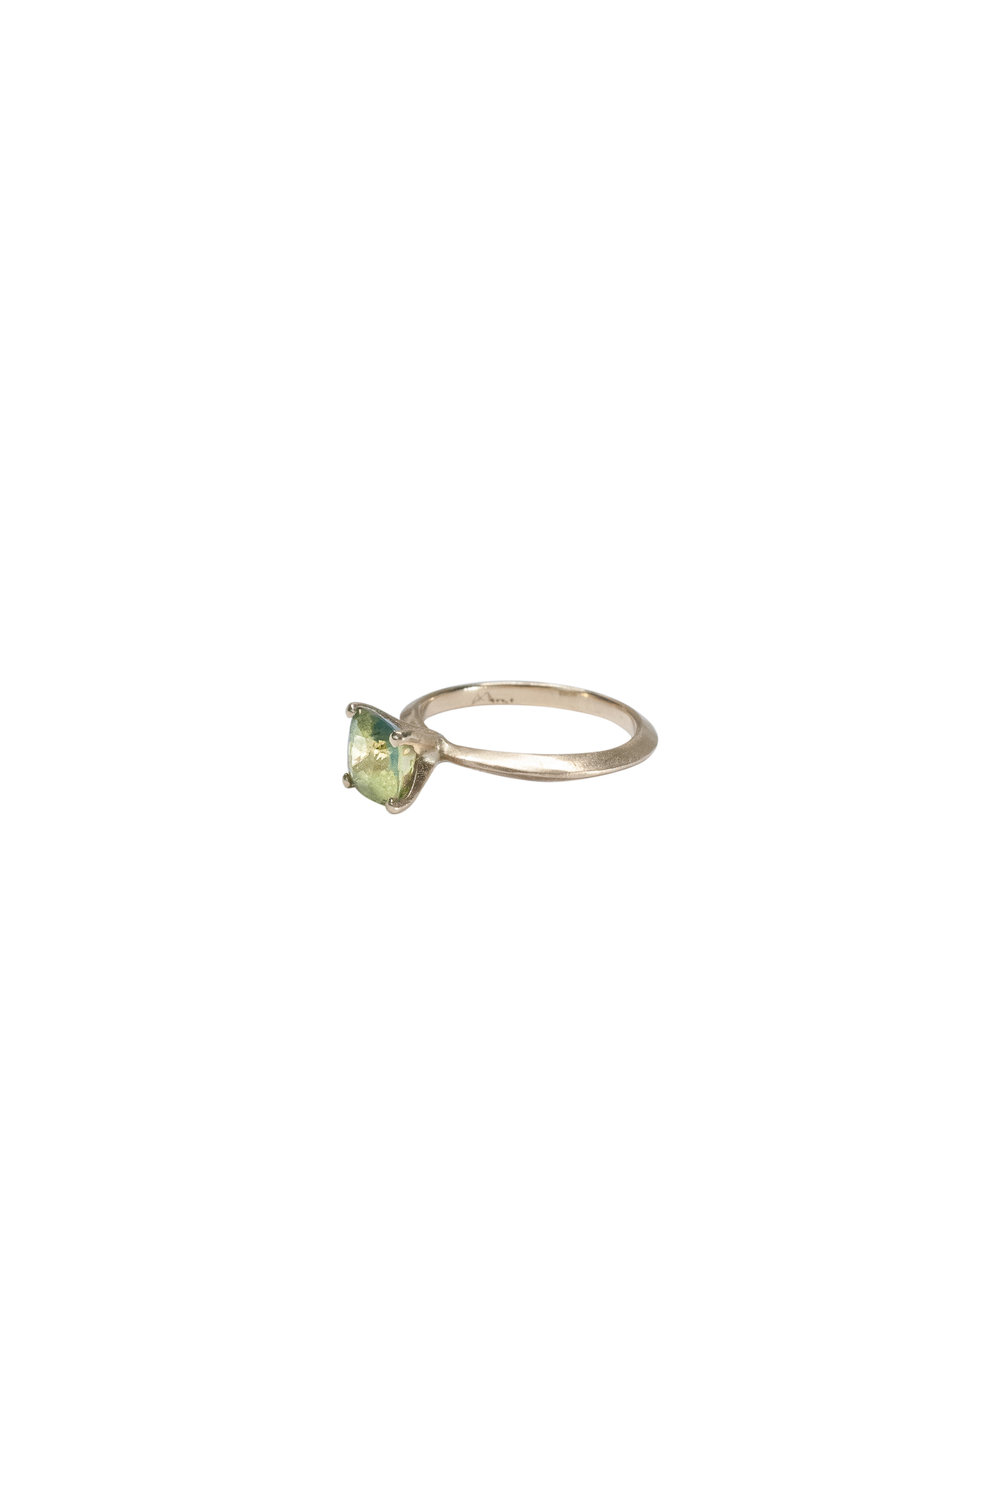 BR213- The Sage Solitaire 1.72CT (2).jpg